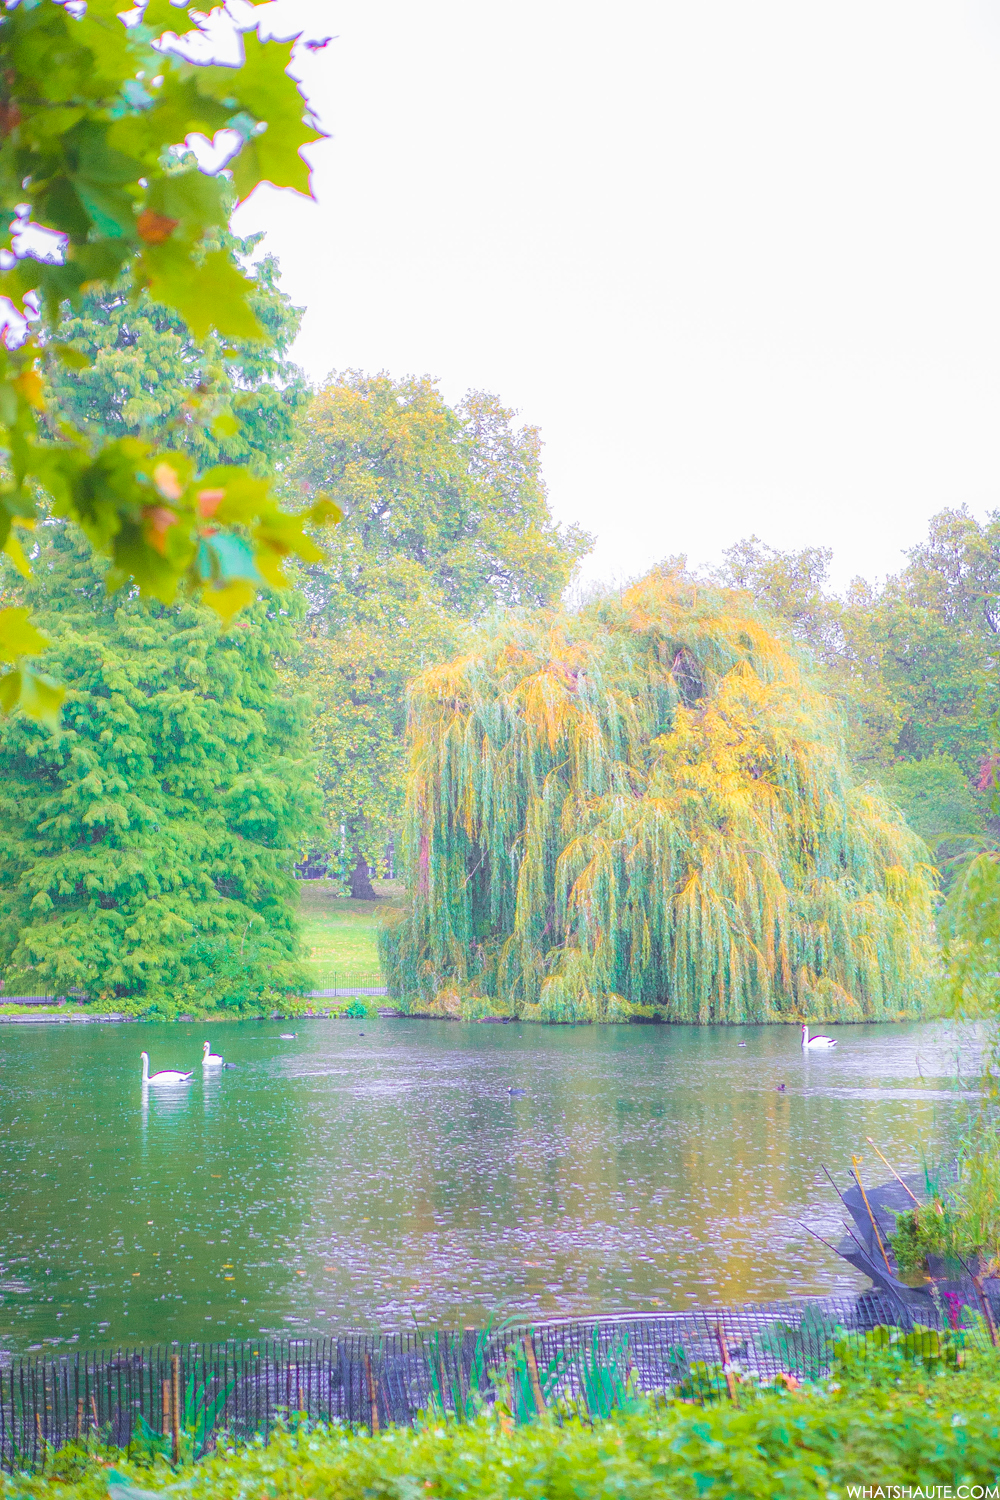 St. James's Park - London, England, What's Haute in the World